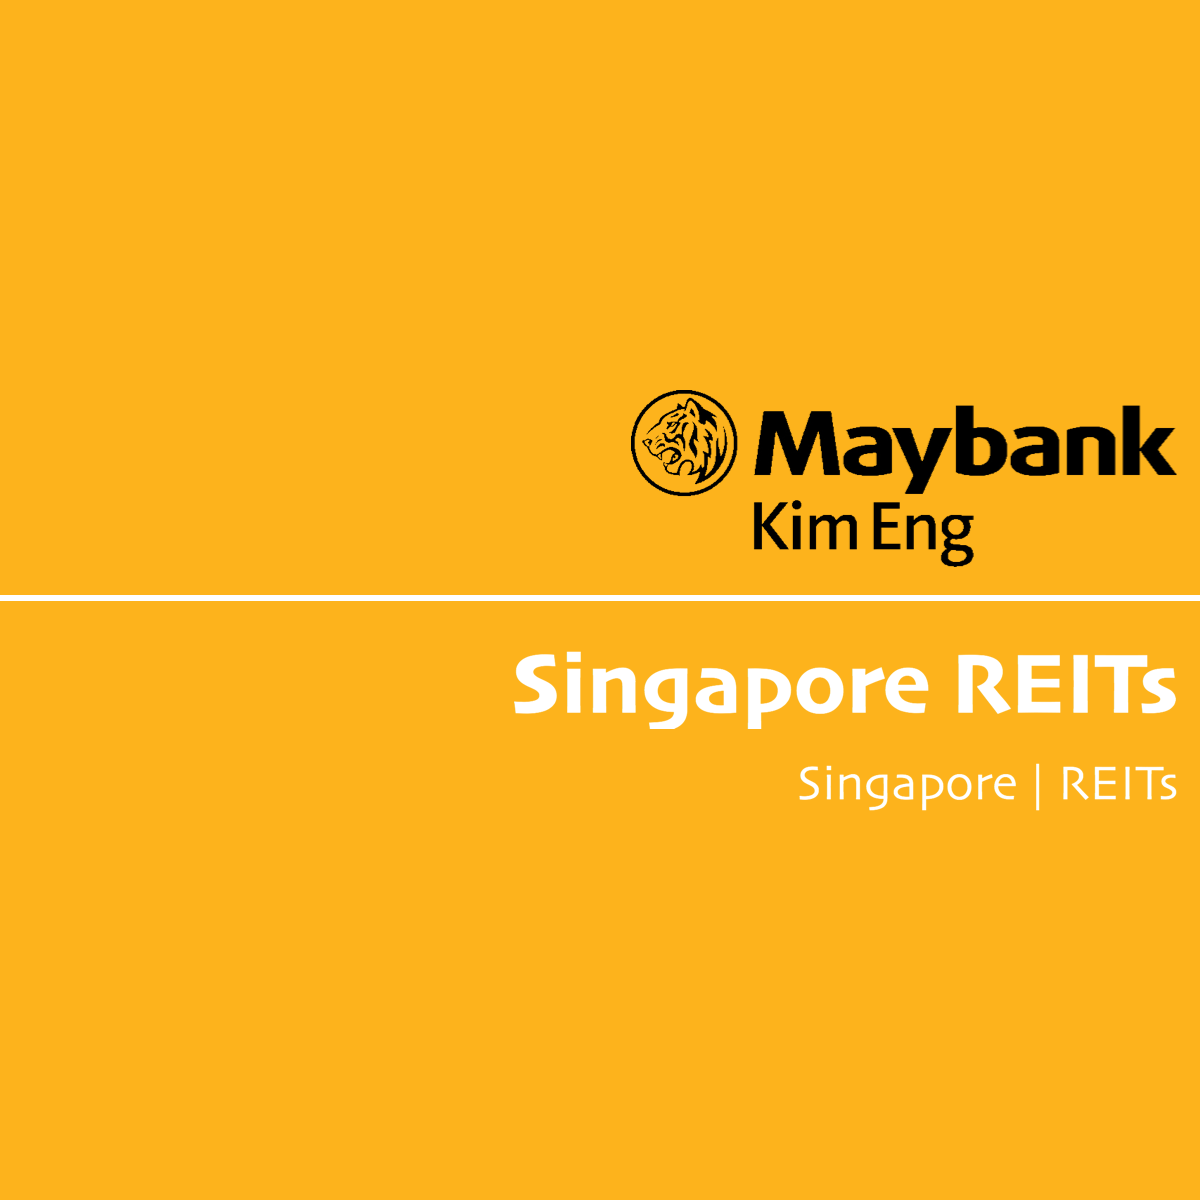 Singapore REITs - Maybank Kim Eng 2018-04-16: Industrials Bottoming Out